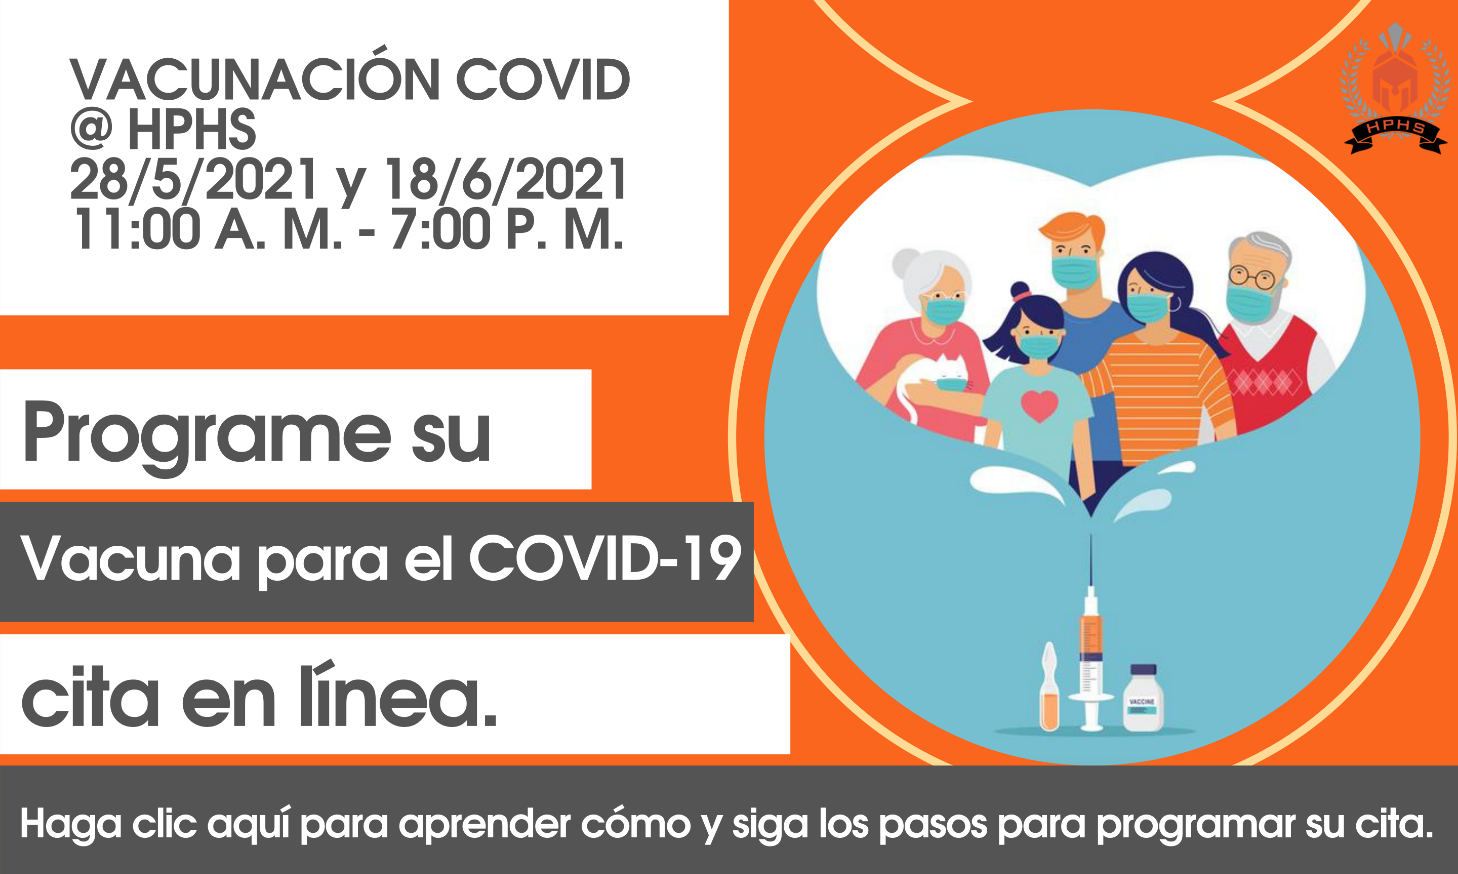 COVID Vaccination at HPHS Flyer Spanish